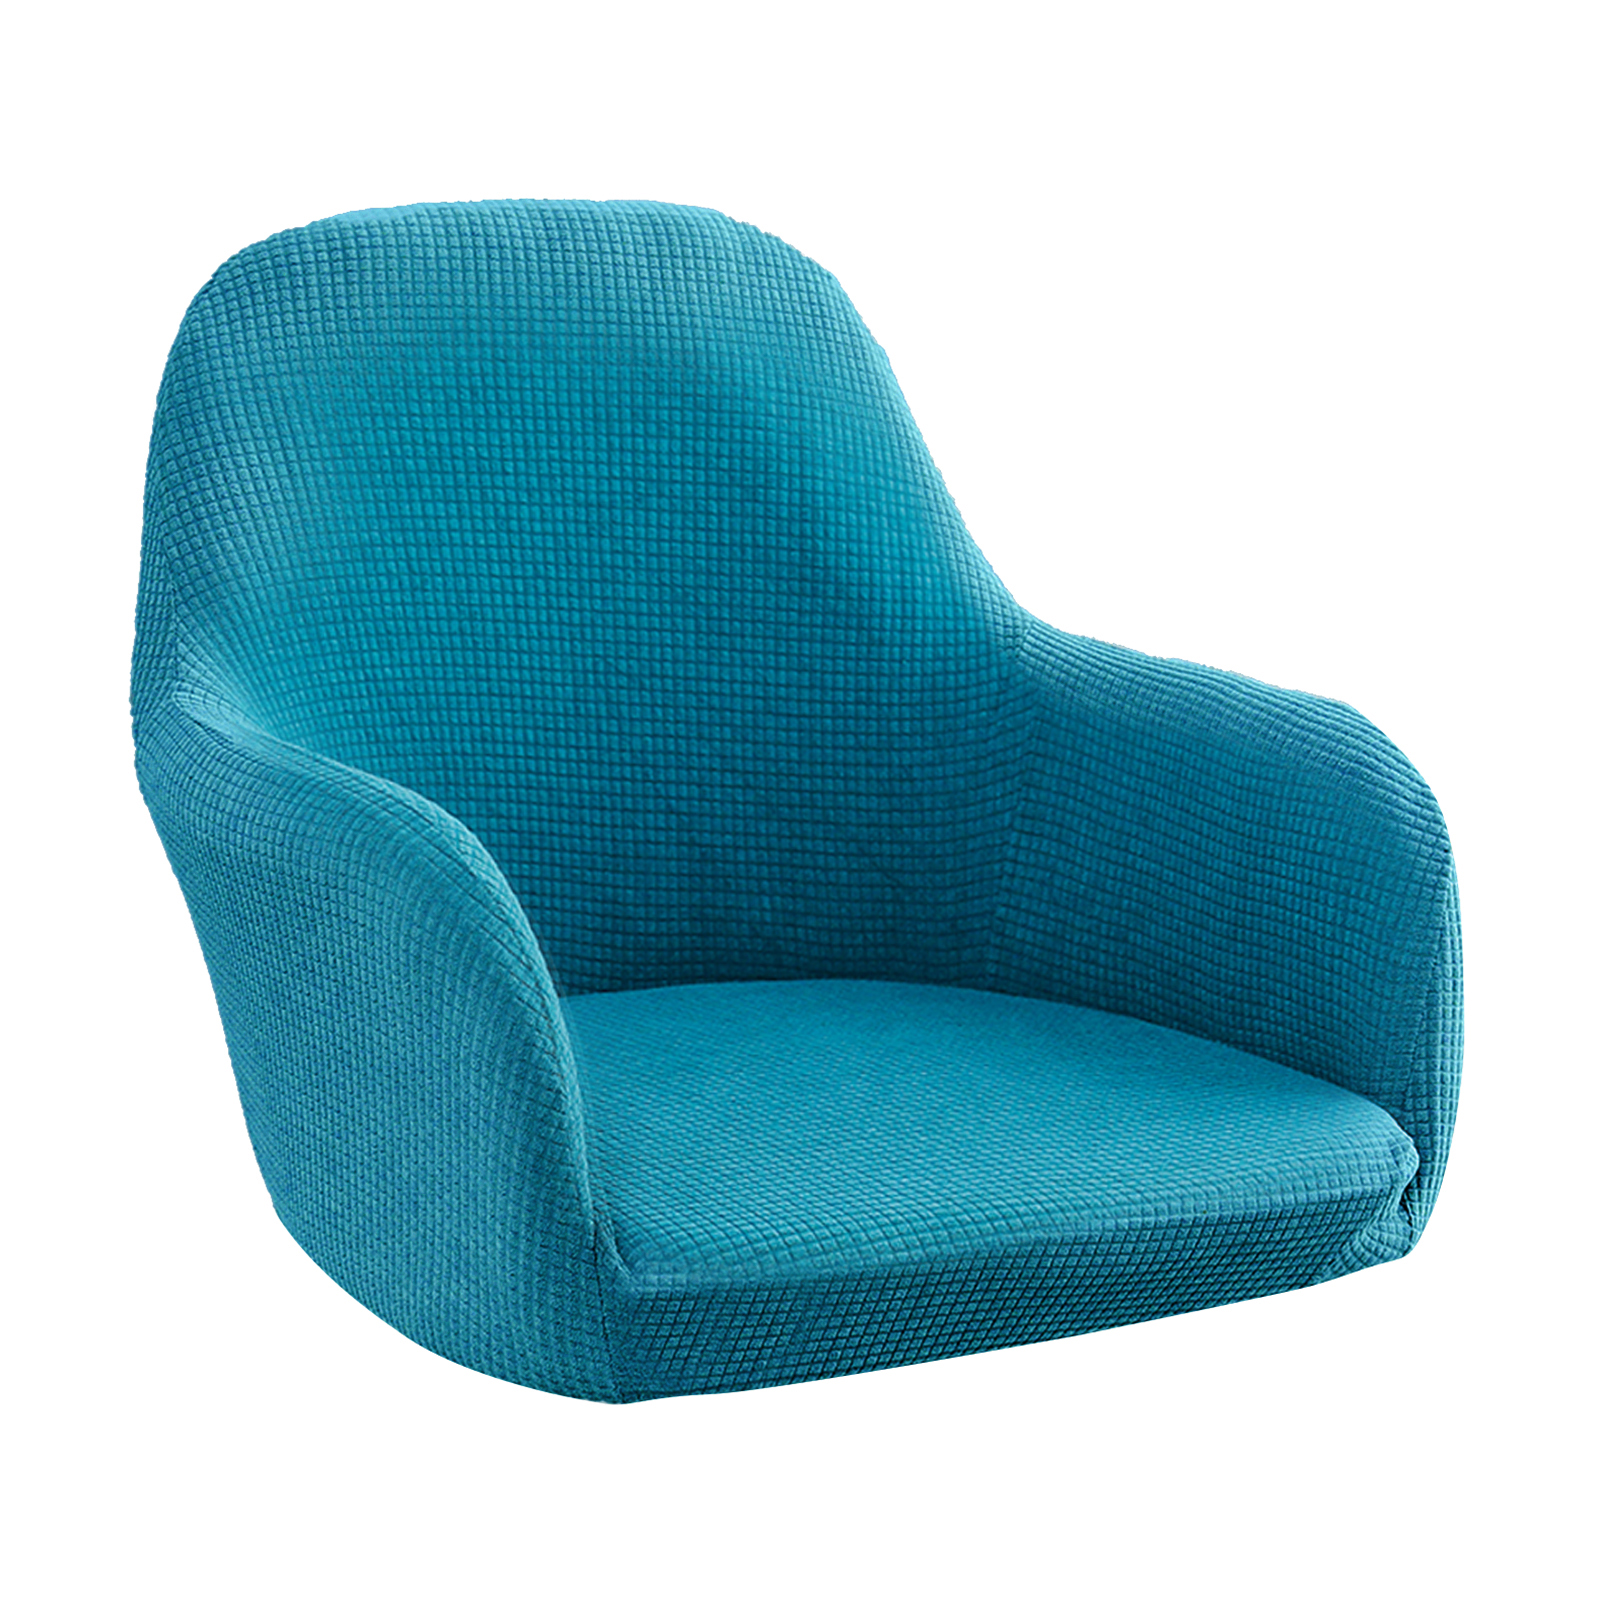 Chair Covers for Dining Room, Soft Stretch Seat Slipcover,Washable Removable Chair Protector